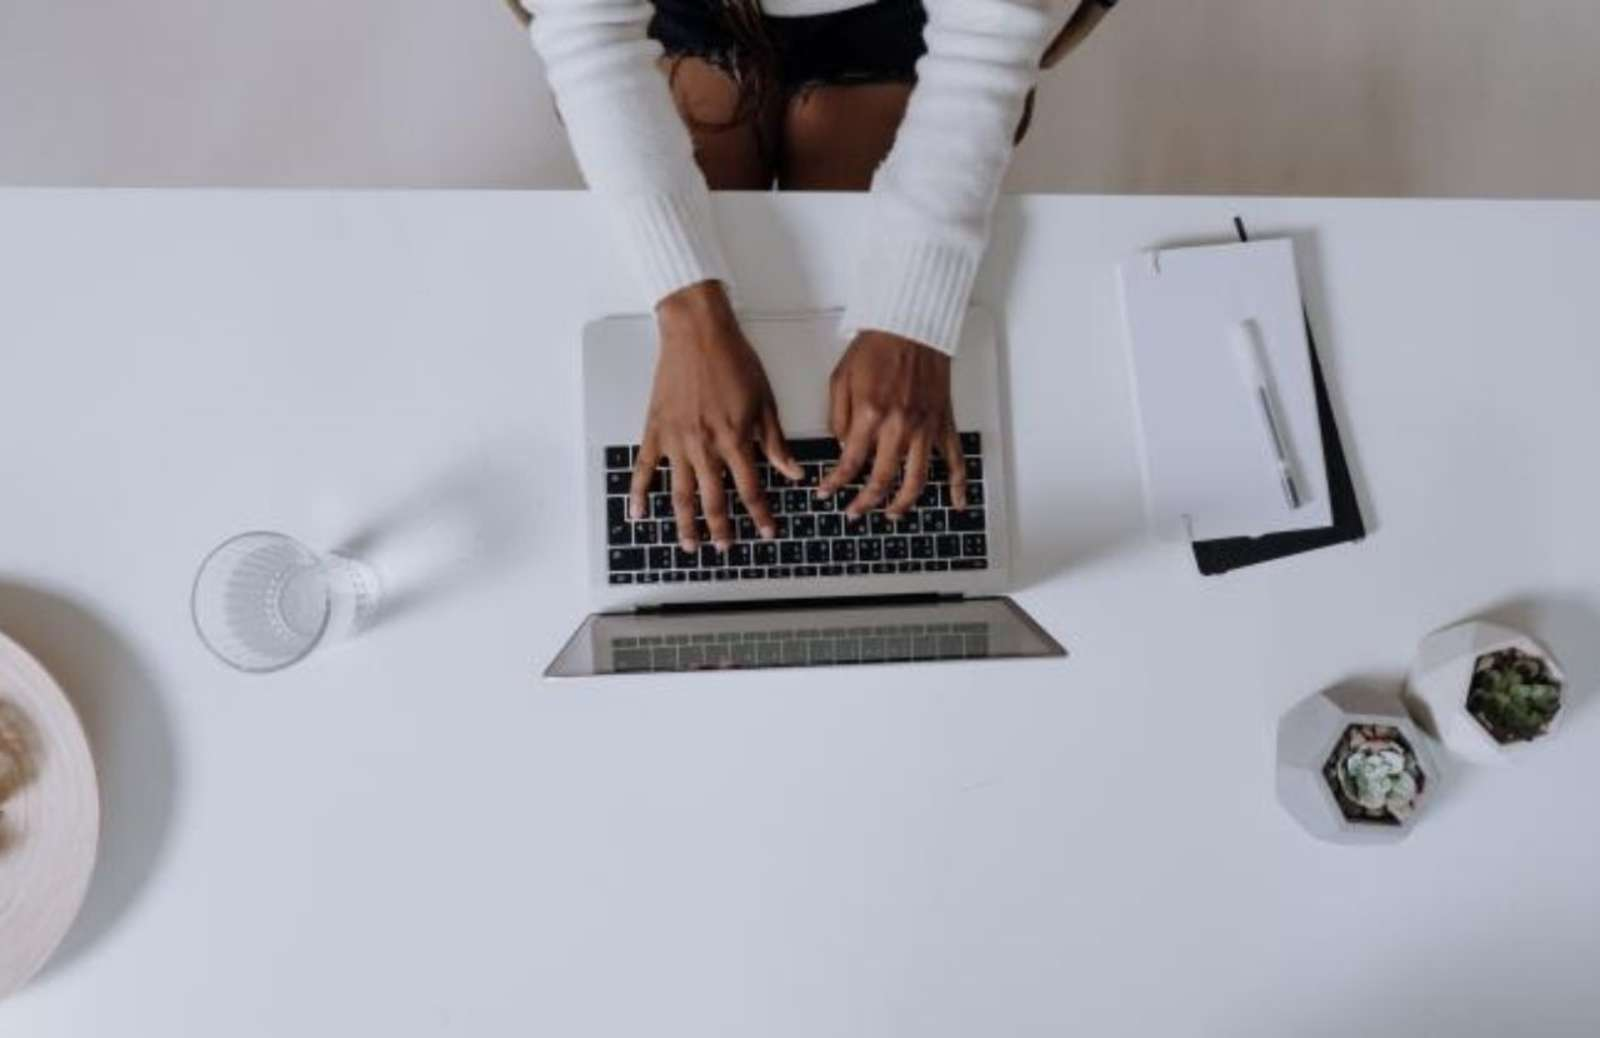 Aerial view of white table top with person's hands on a laptop keyboard